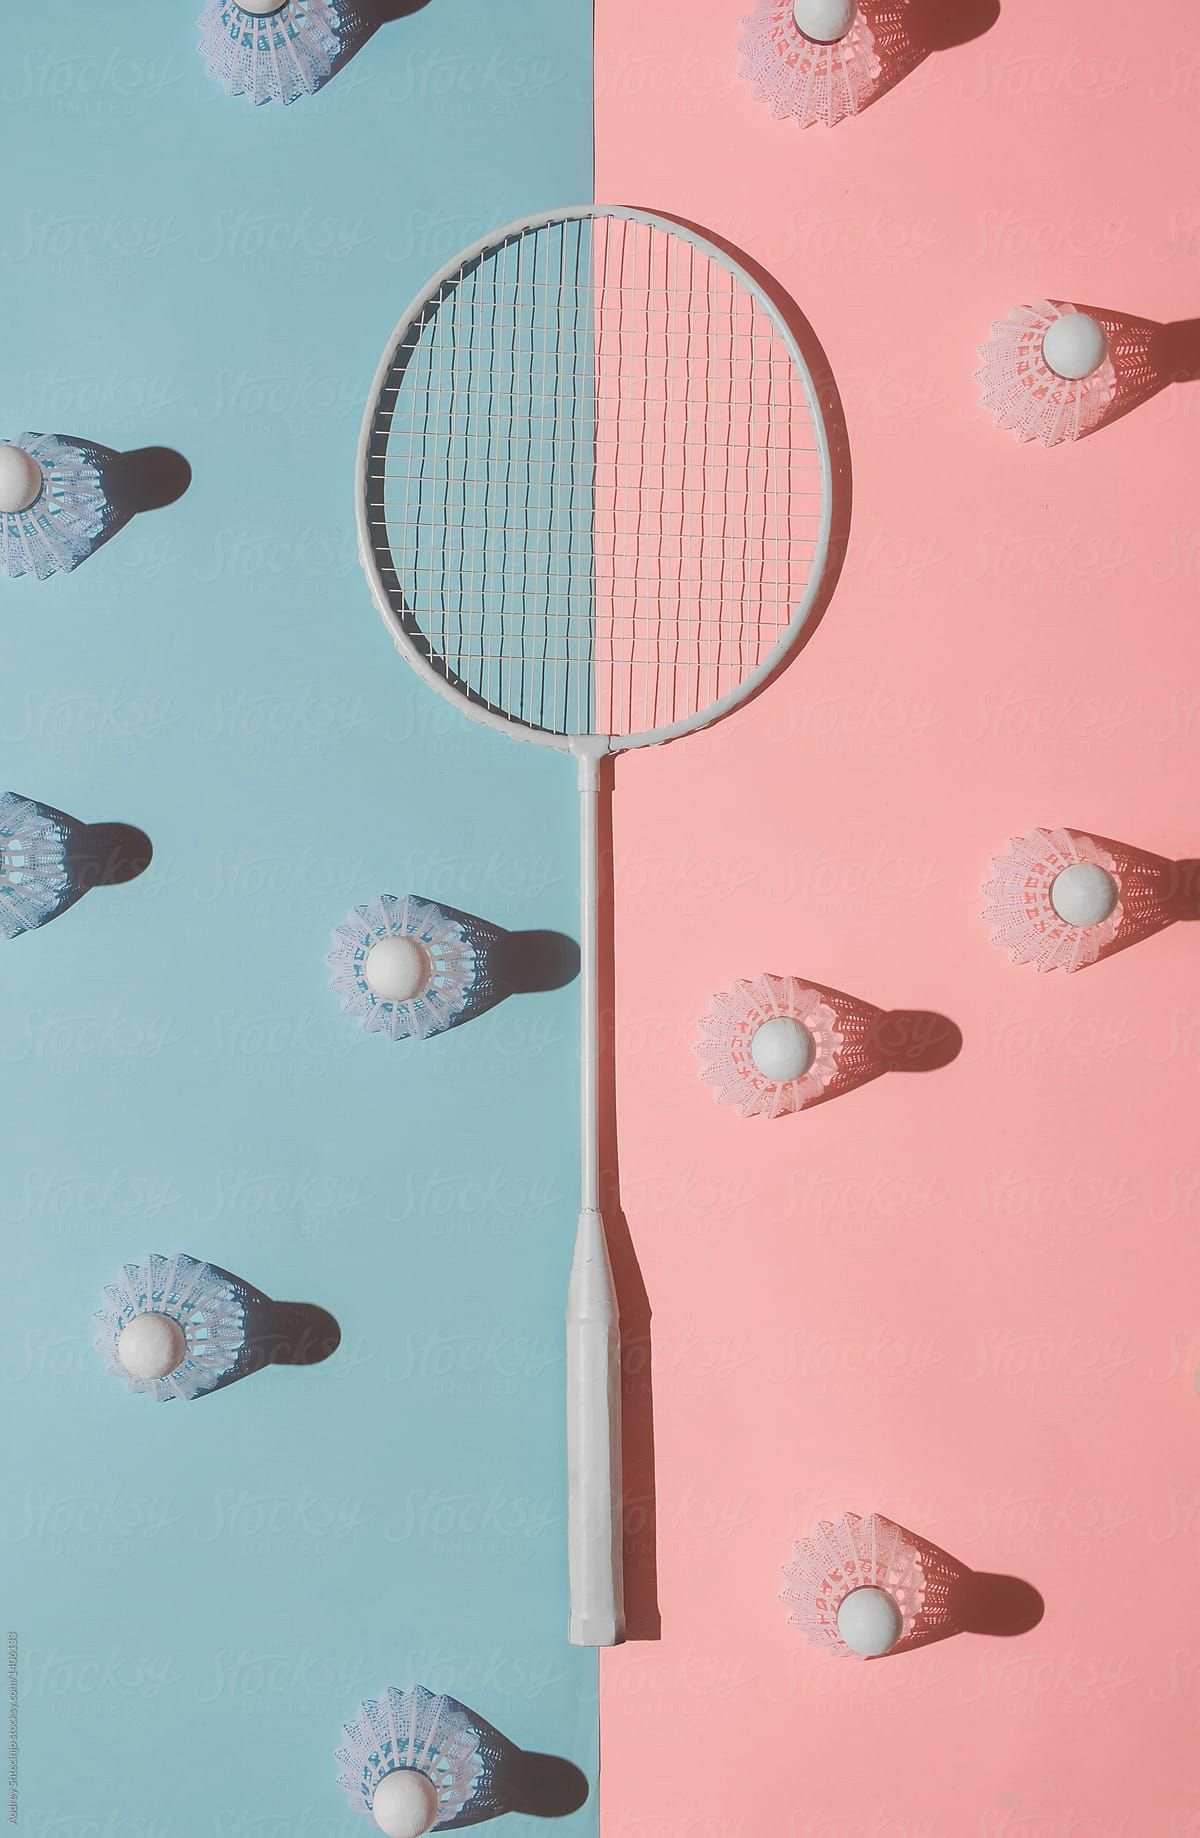 Badminton Rackets On Pink And Blue Background Stocksy United Kertas Dinding Poster Bunga Badminton